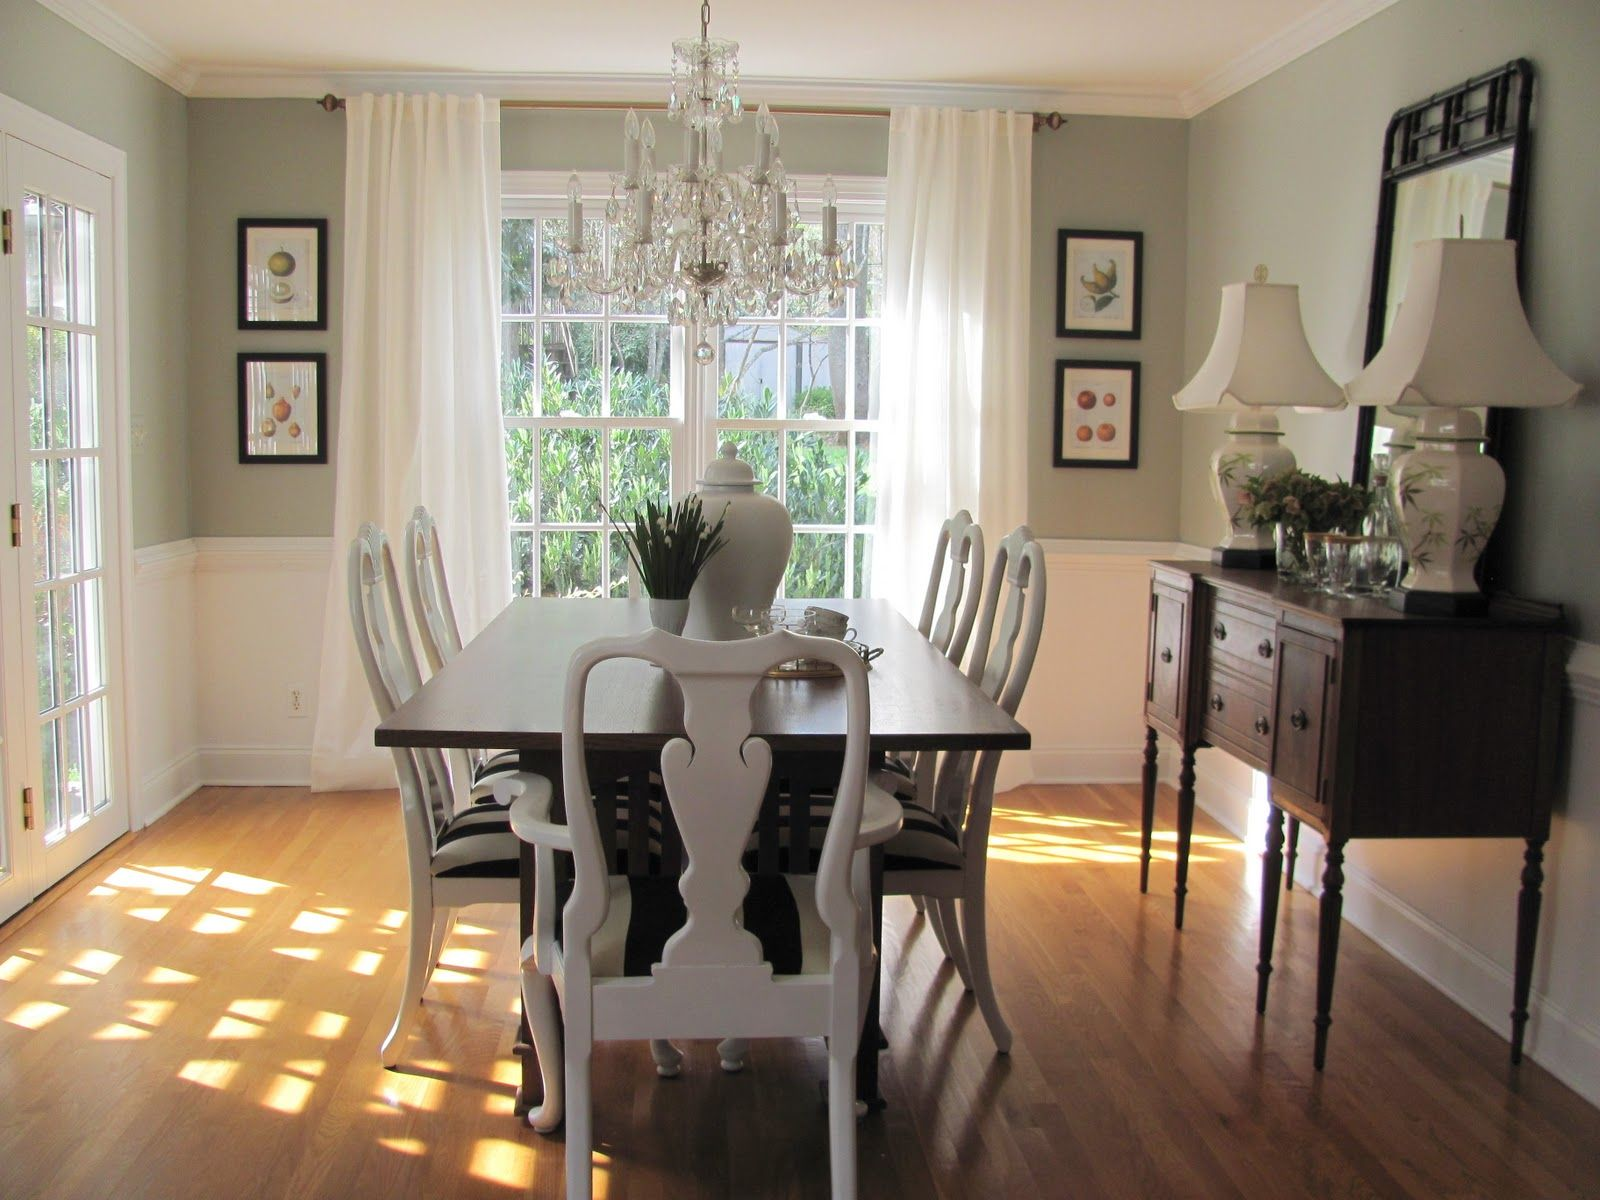 Dining Room Color Ideas dining room paint colors with chair rail - google search | forever